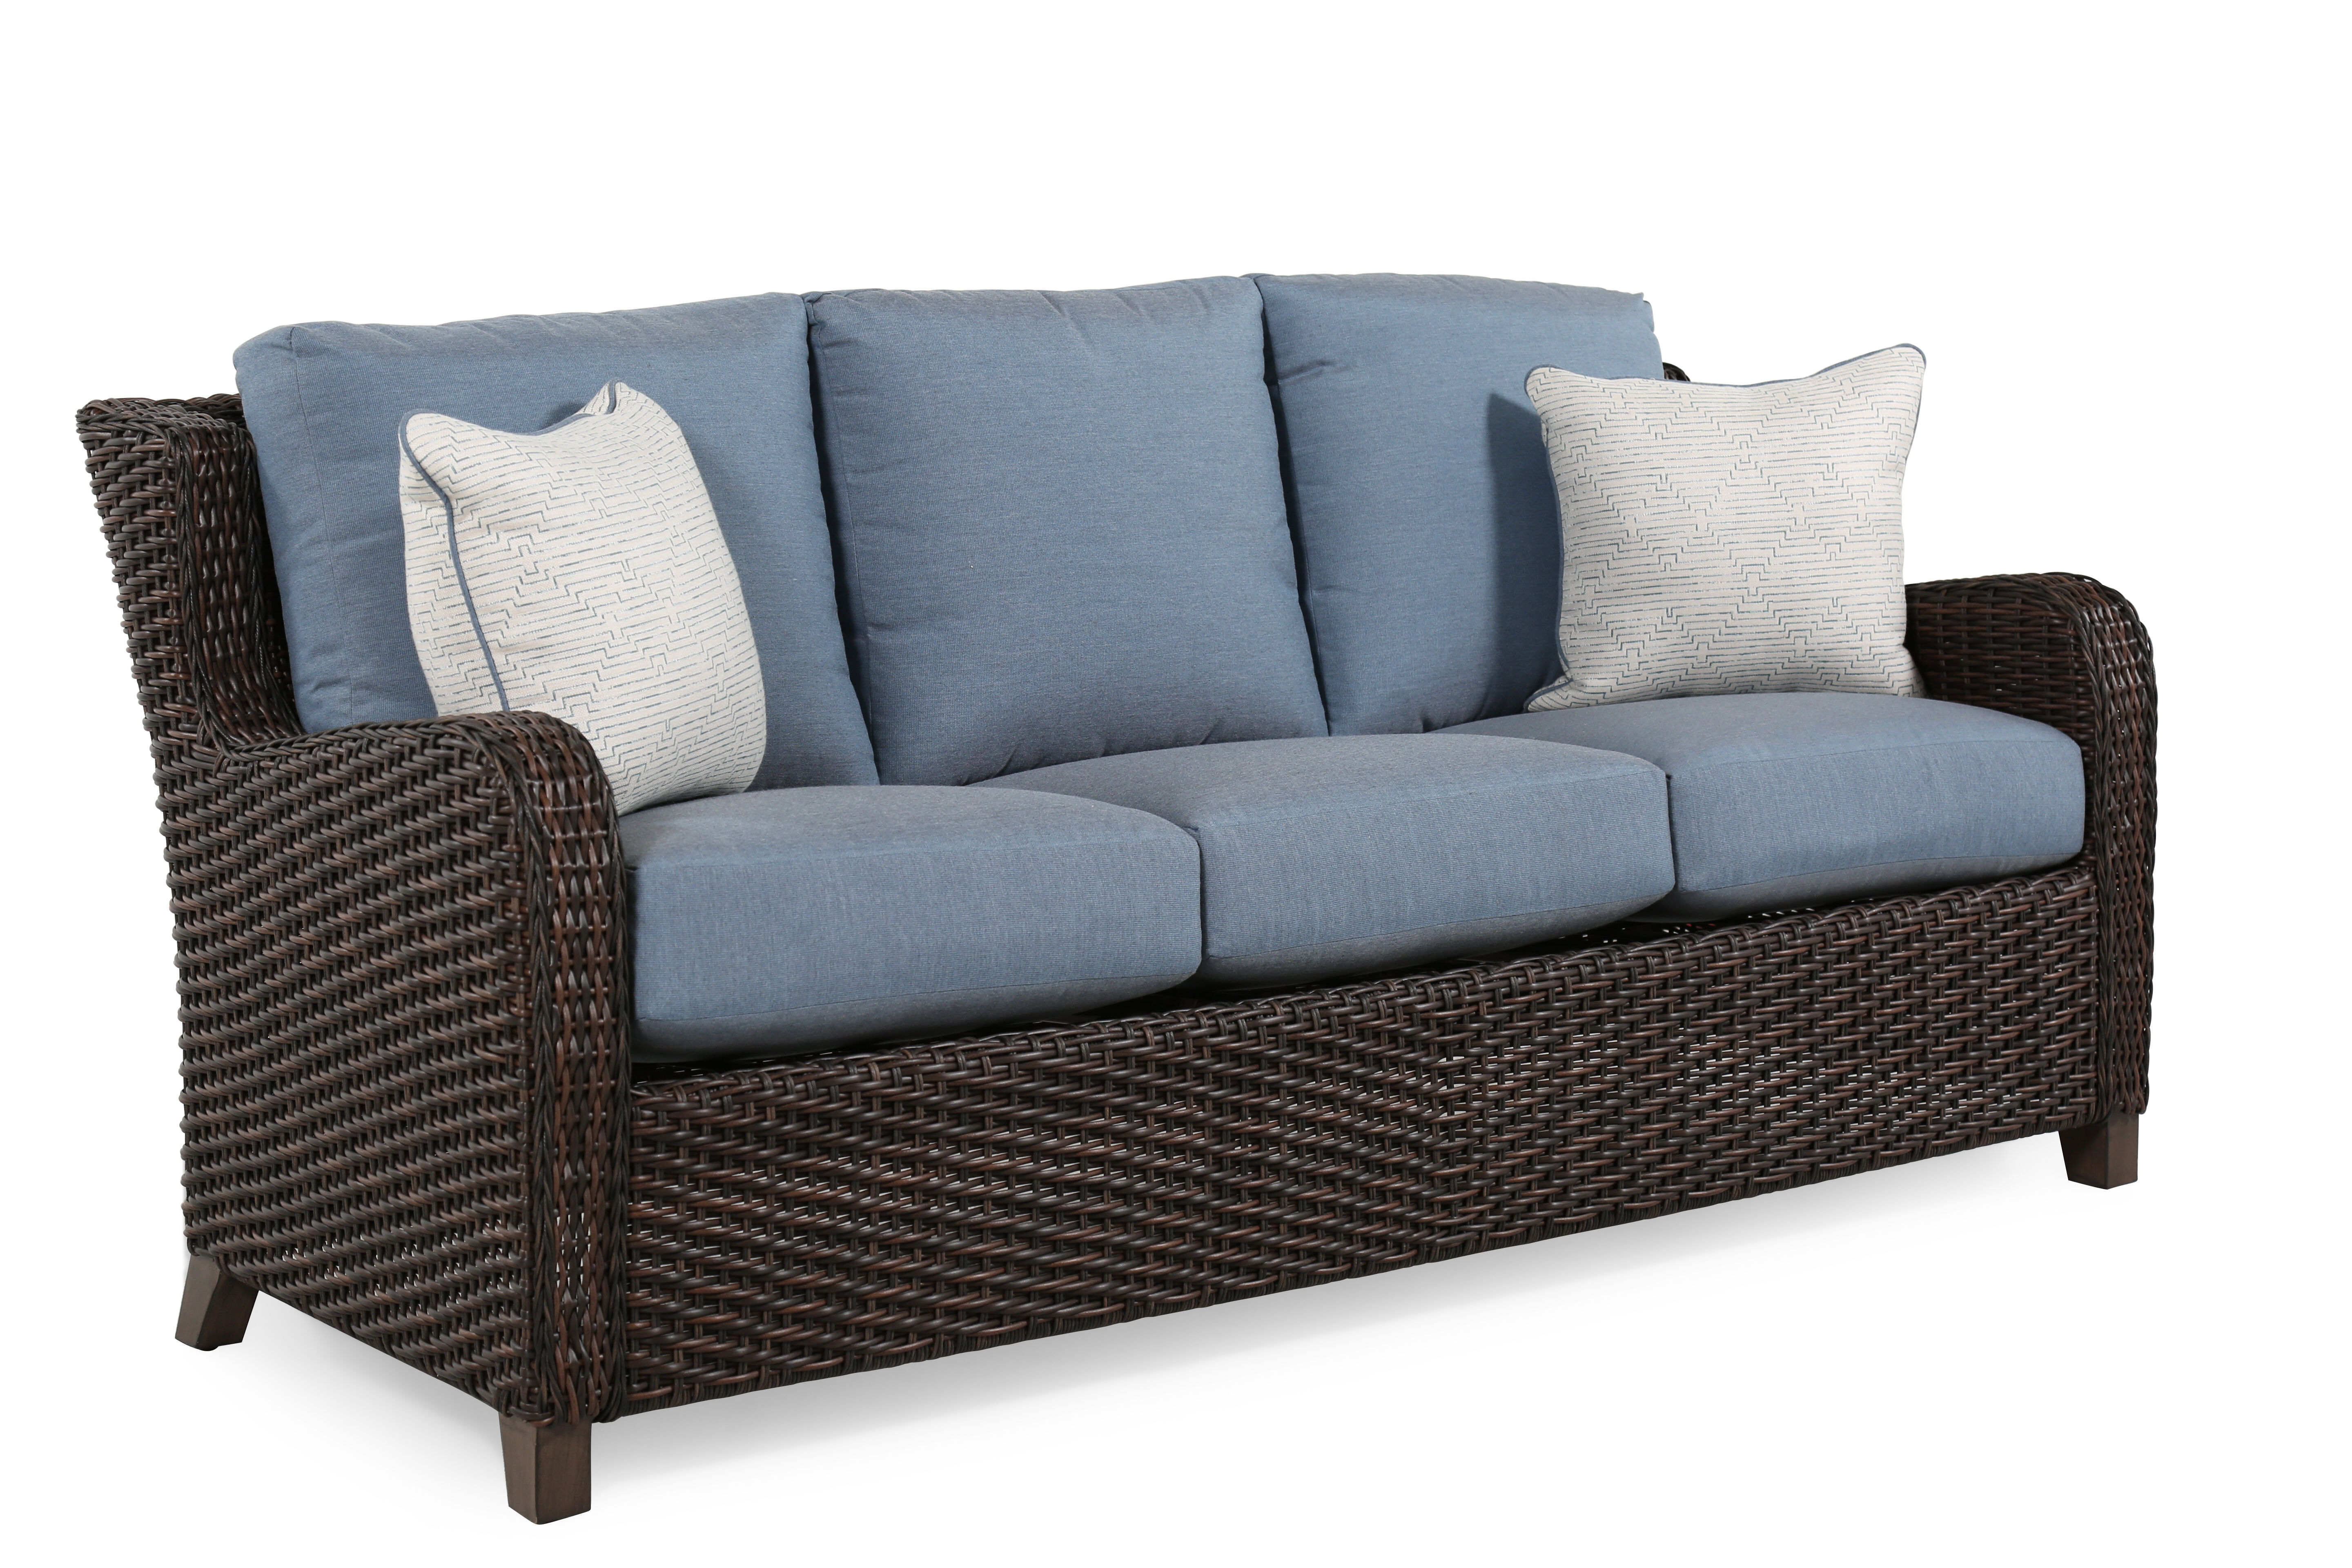 Water Resistant Contemporary Sofa In Slate Blue